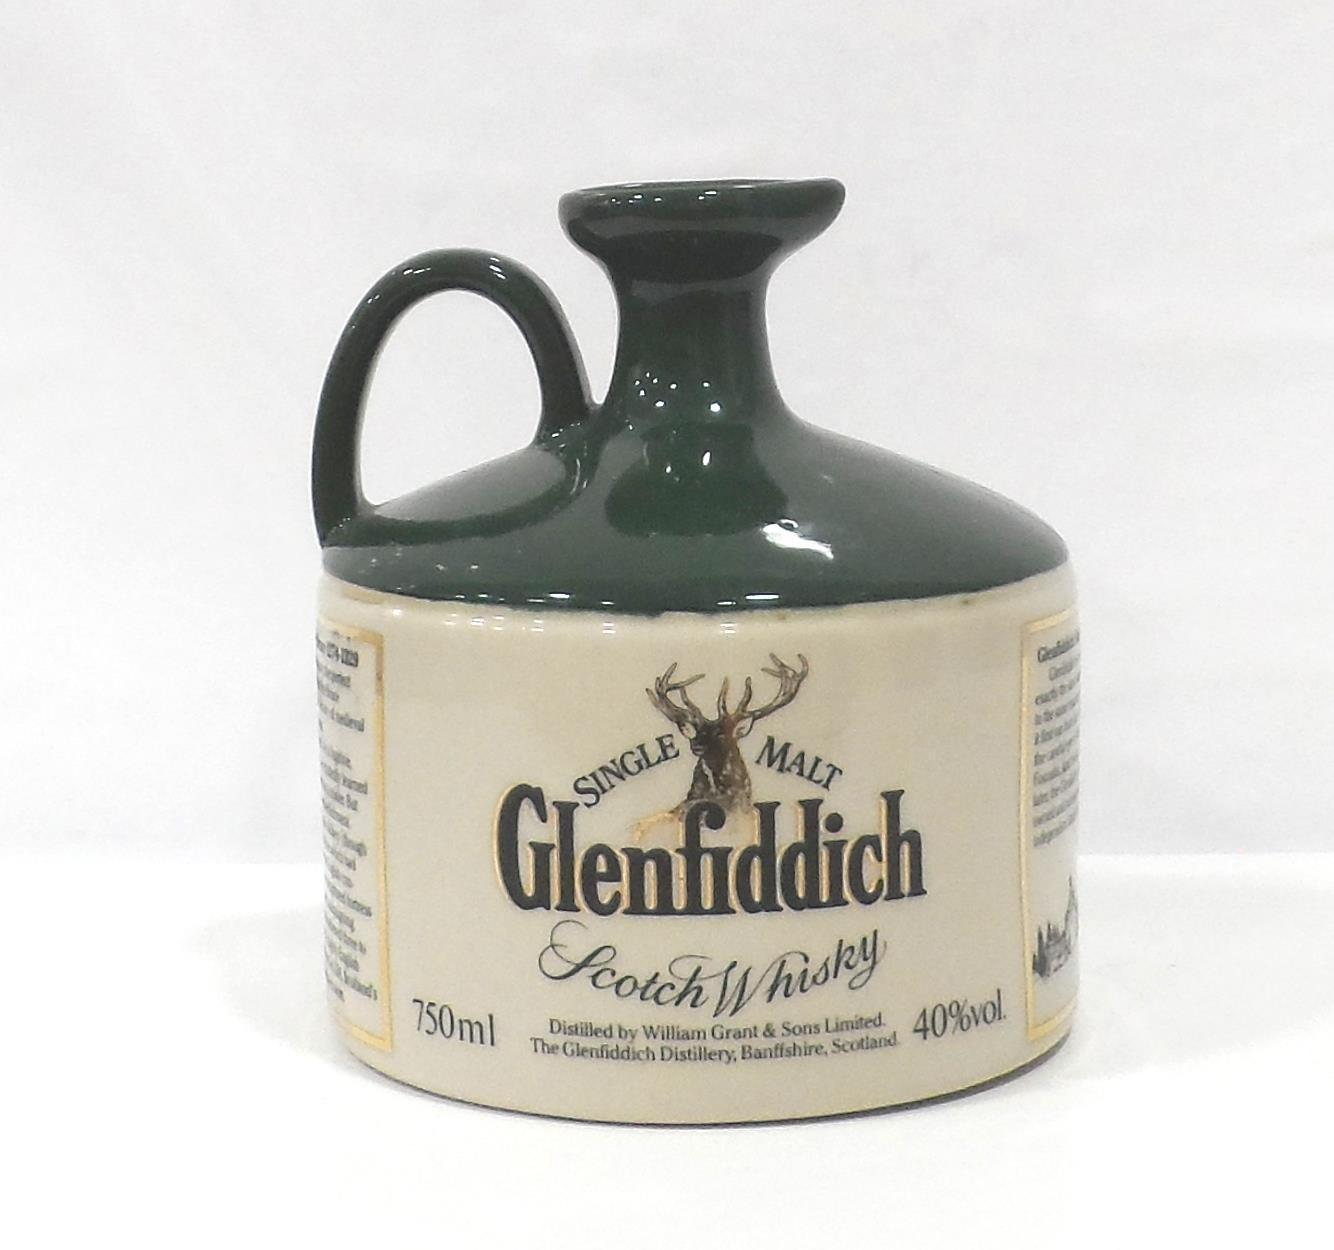 Lot 6 - GLENFIDDICH HERITAGE RESERVE ROBERT THE BRUCE An older decanter of the Glenfiddich Heritage